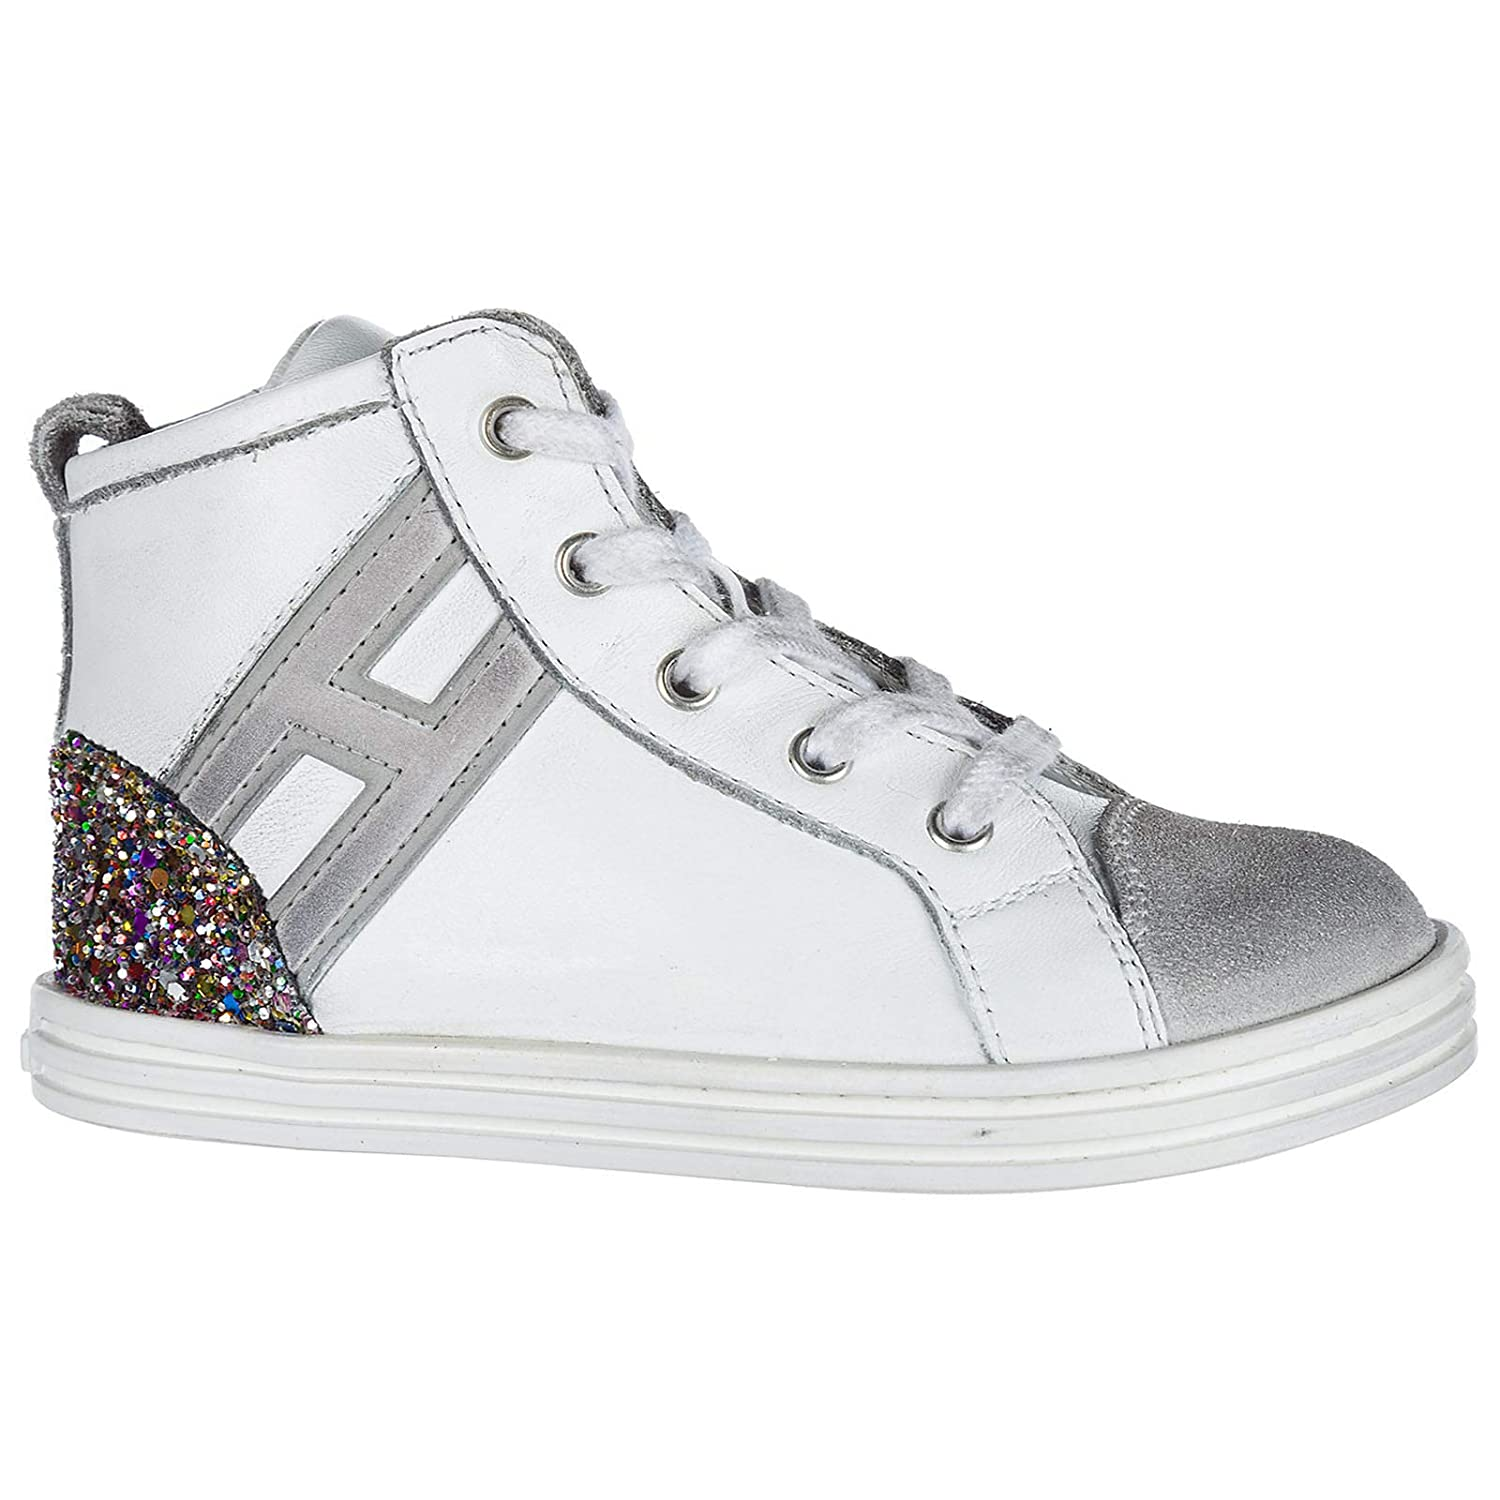 ccfff8bfe4e3 Hogan Baby R141 high top Sneakers Bianco 9C UK Child  Amazon.co.uk  Shoes    Bags